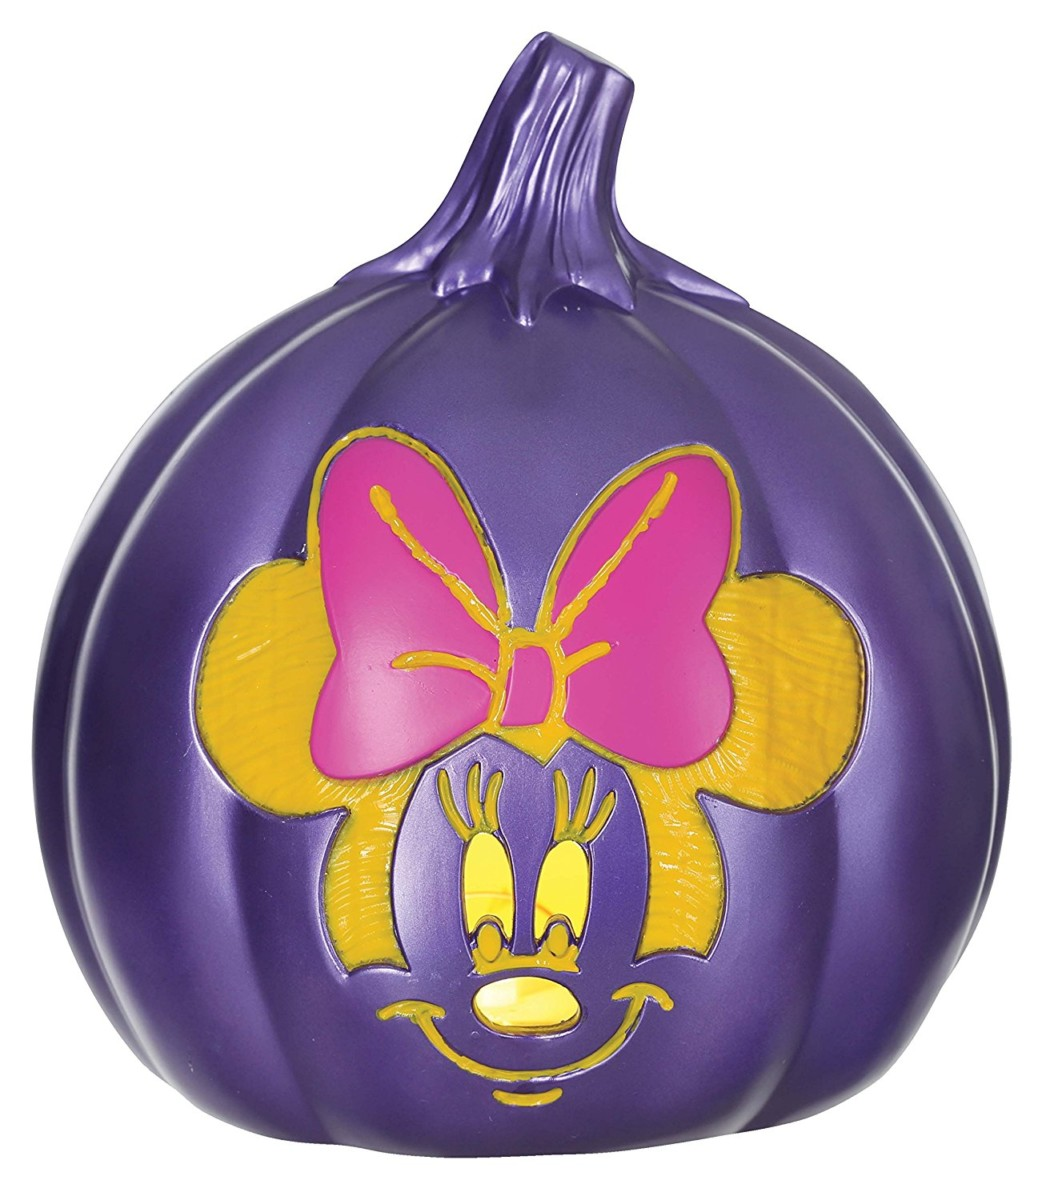 More Disney Halloween Decorations for the Home! 3